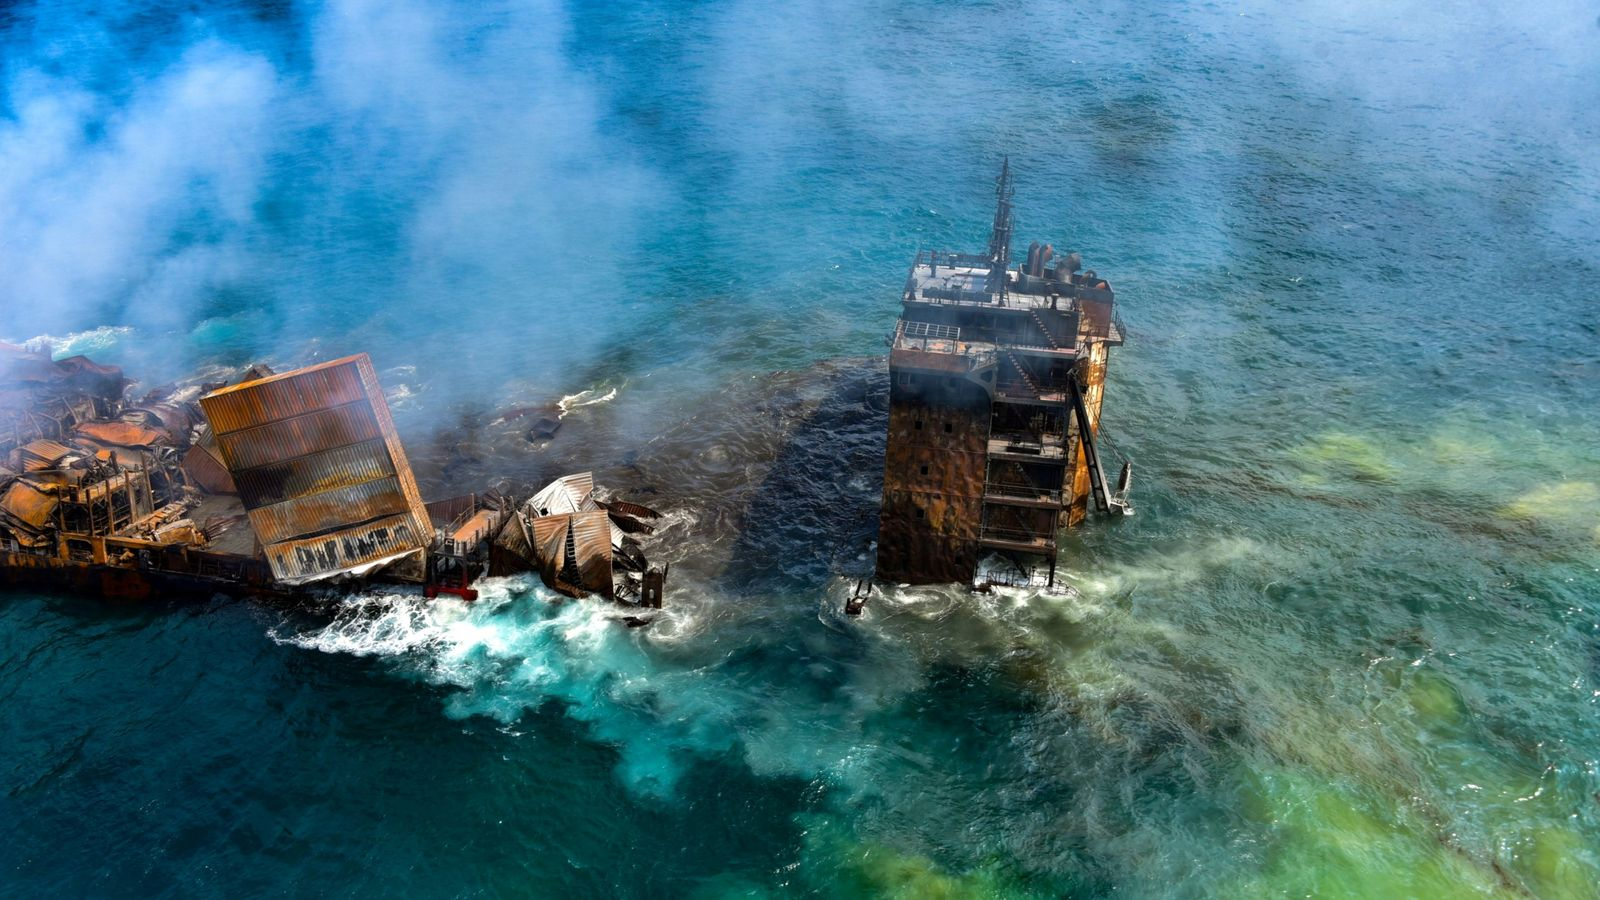 Sri Lanka cargo ship disaster: Salvage experts monitoring sinking chemical-laden cargo vessel for pollution